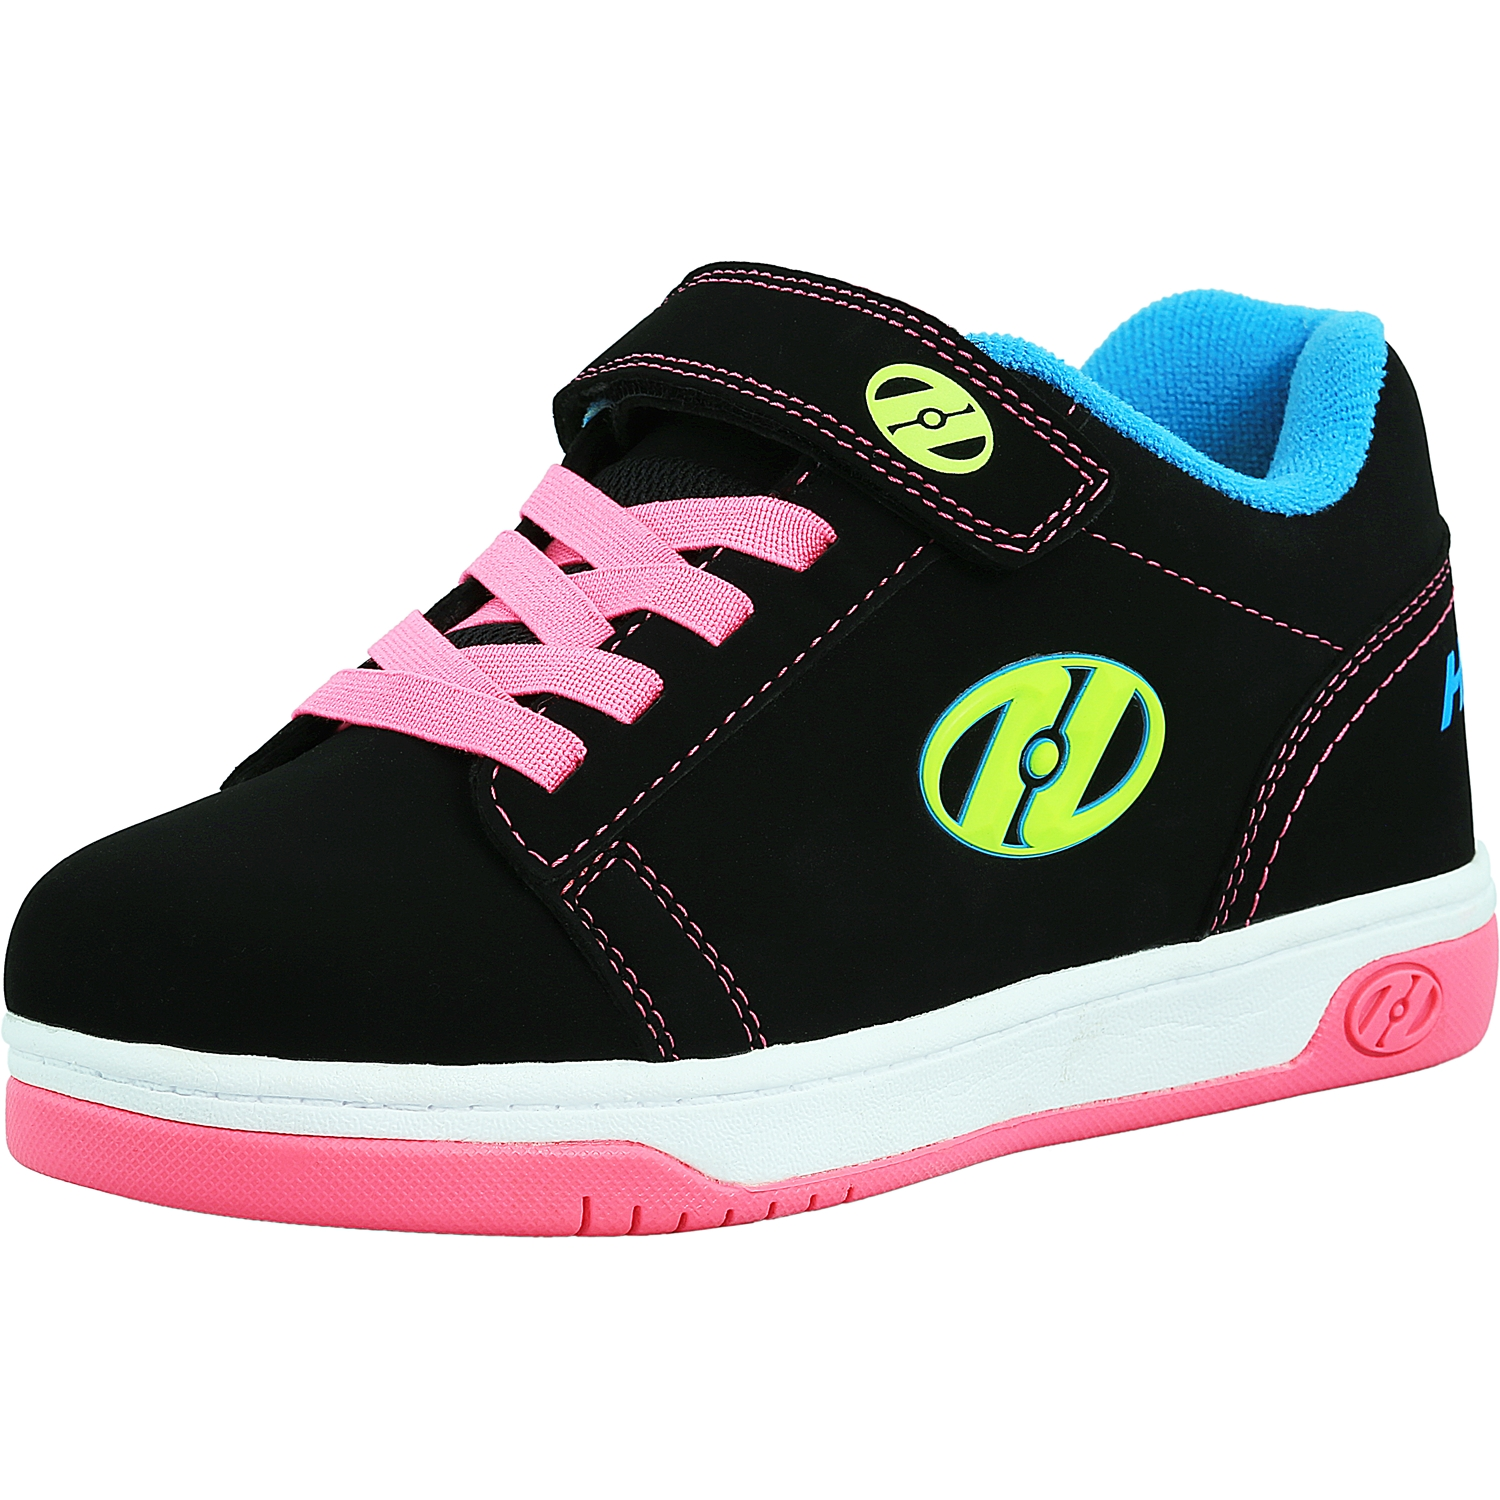 Heelys Dual Up X2 Black / Neon Multi Ankle-High Fashion Sneaker - 2M